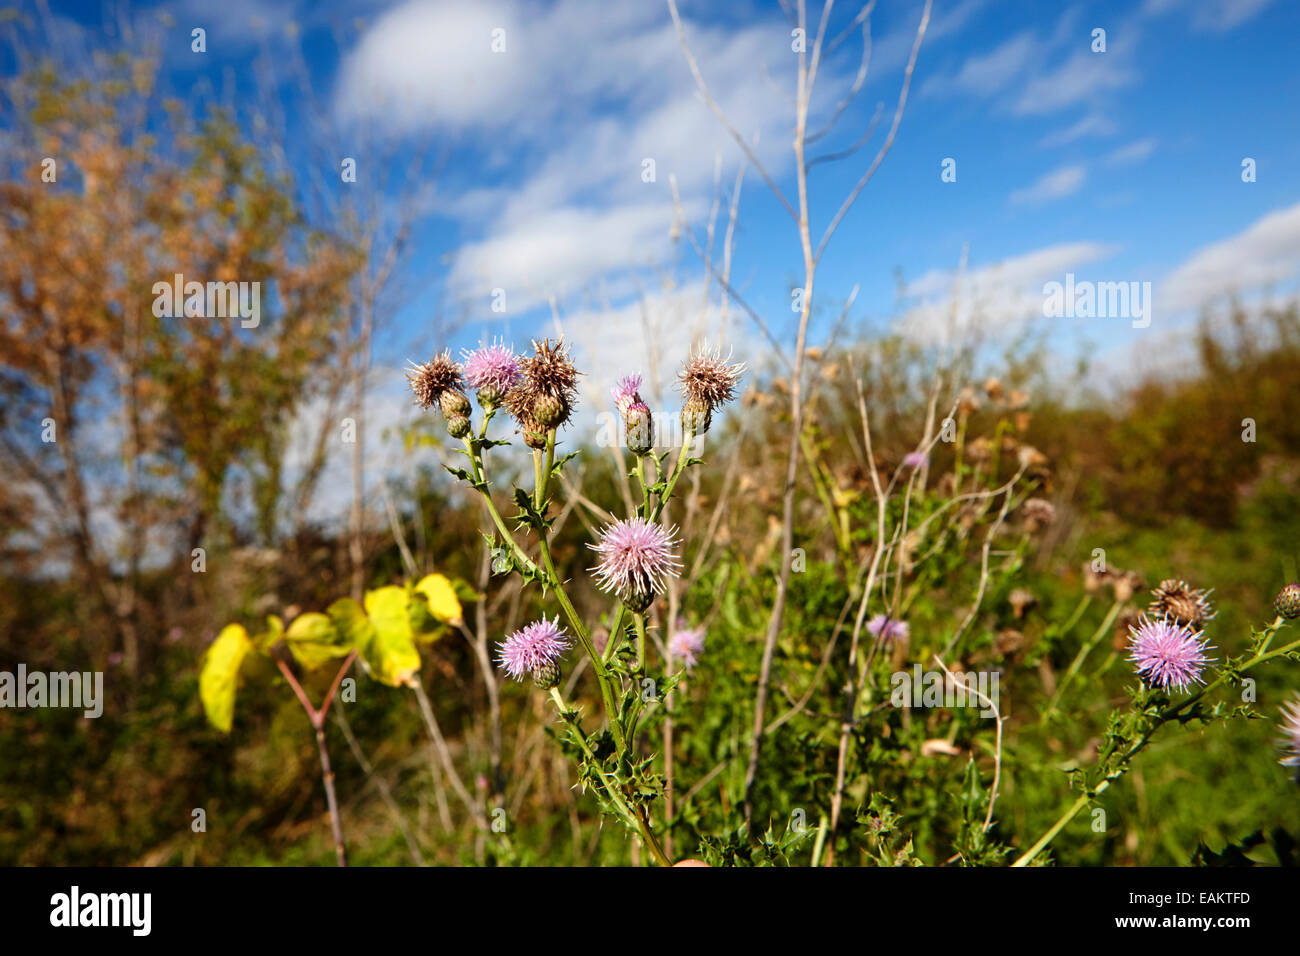 canadian thistle plants Saskatchewan Canada - Stock Image